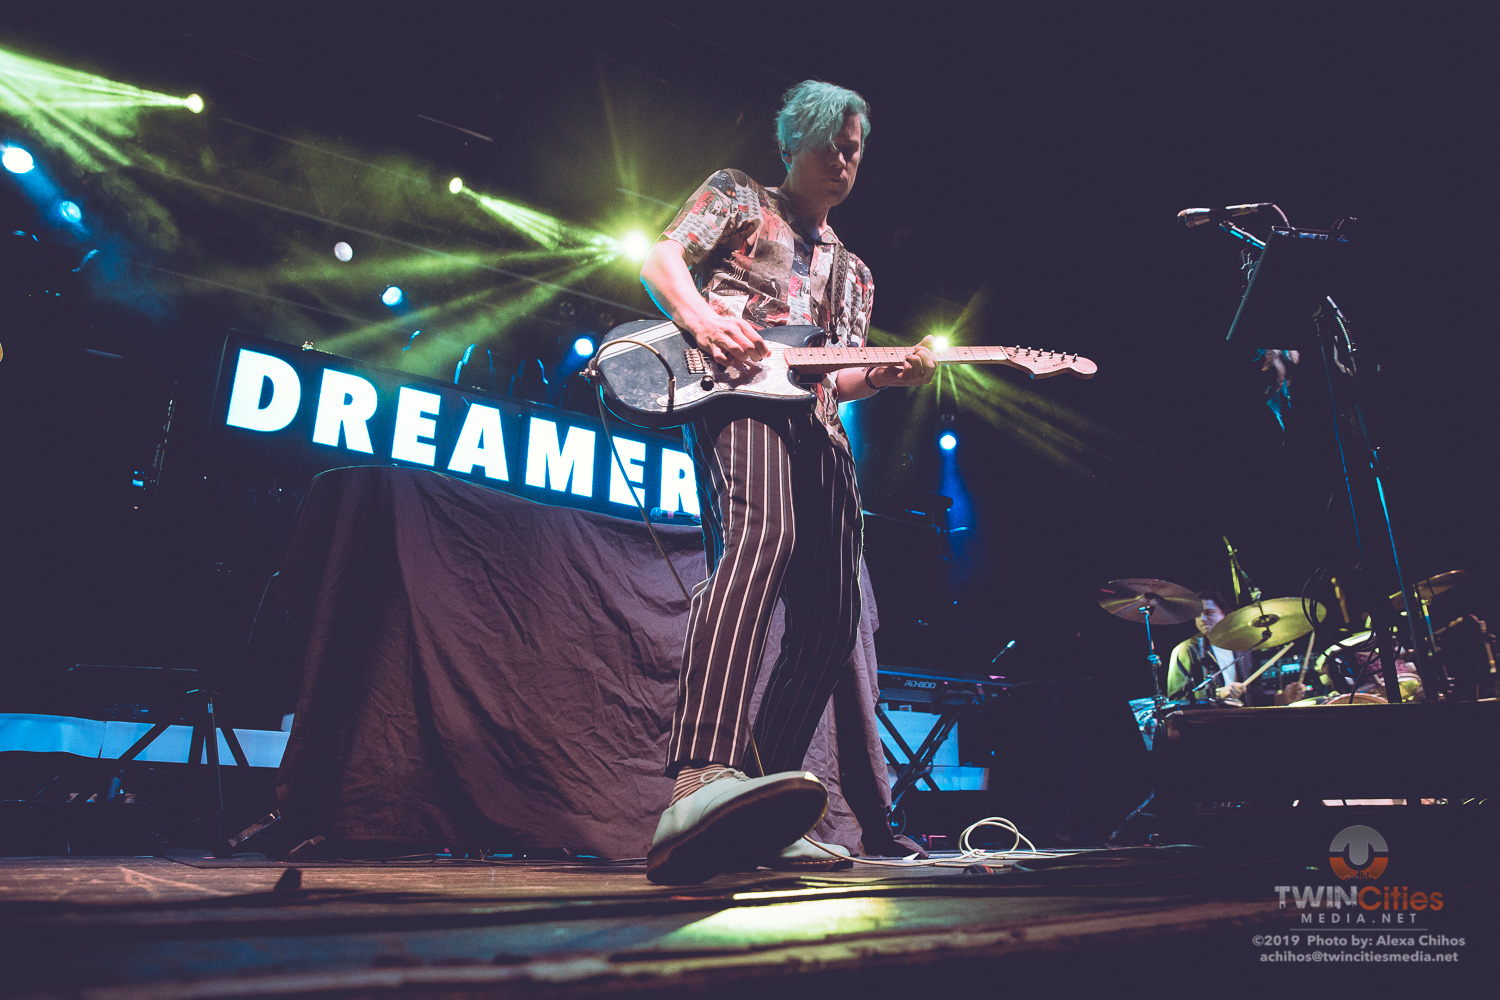 DREAMERS-11